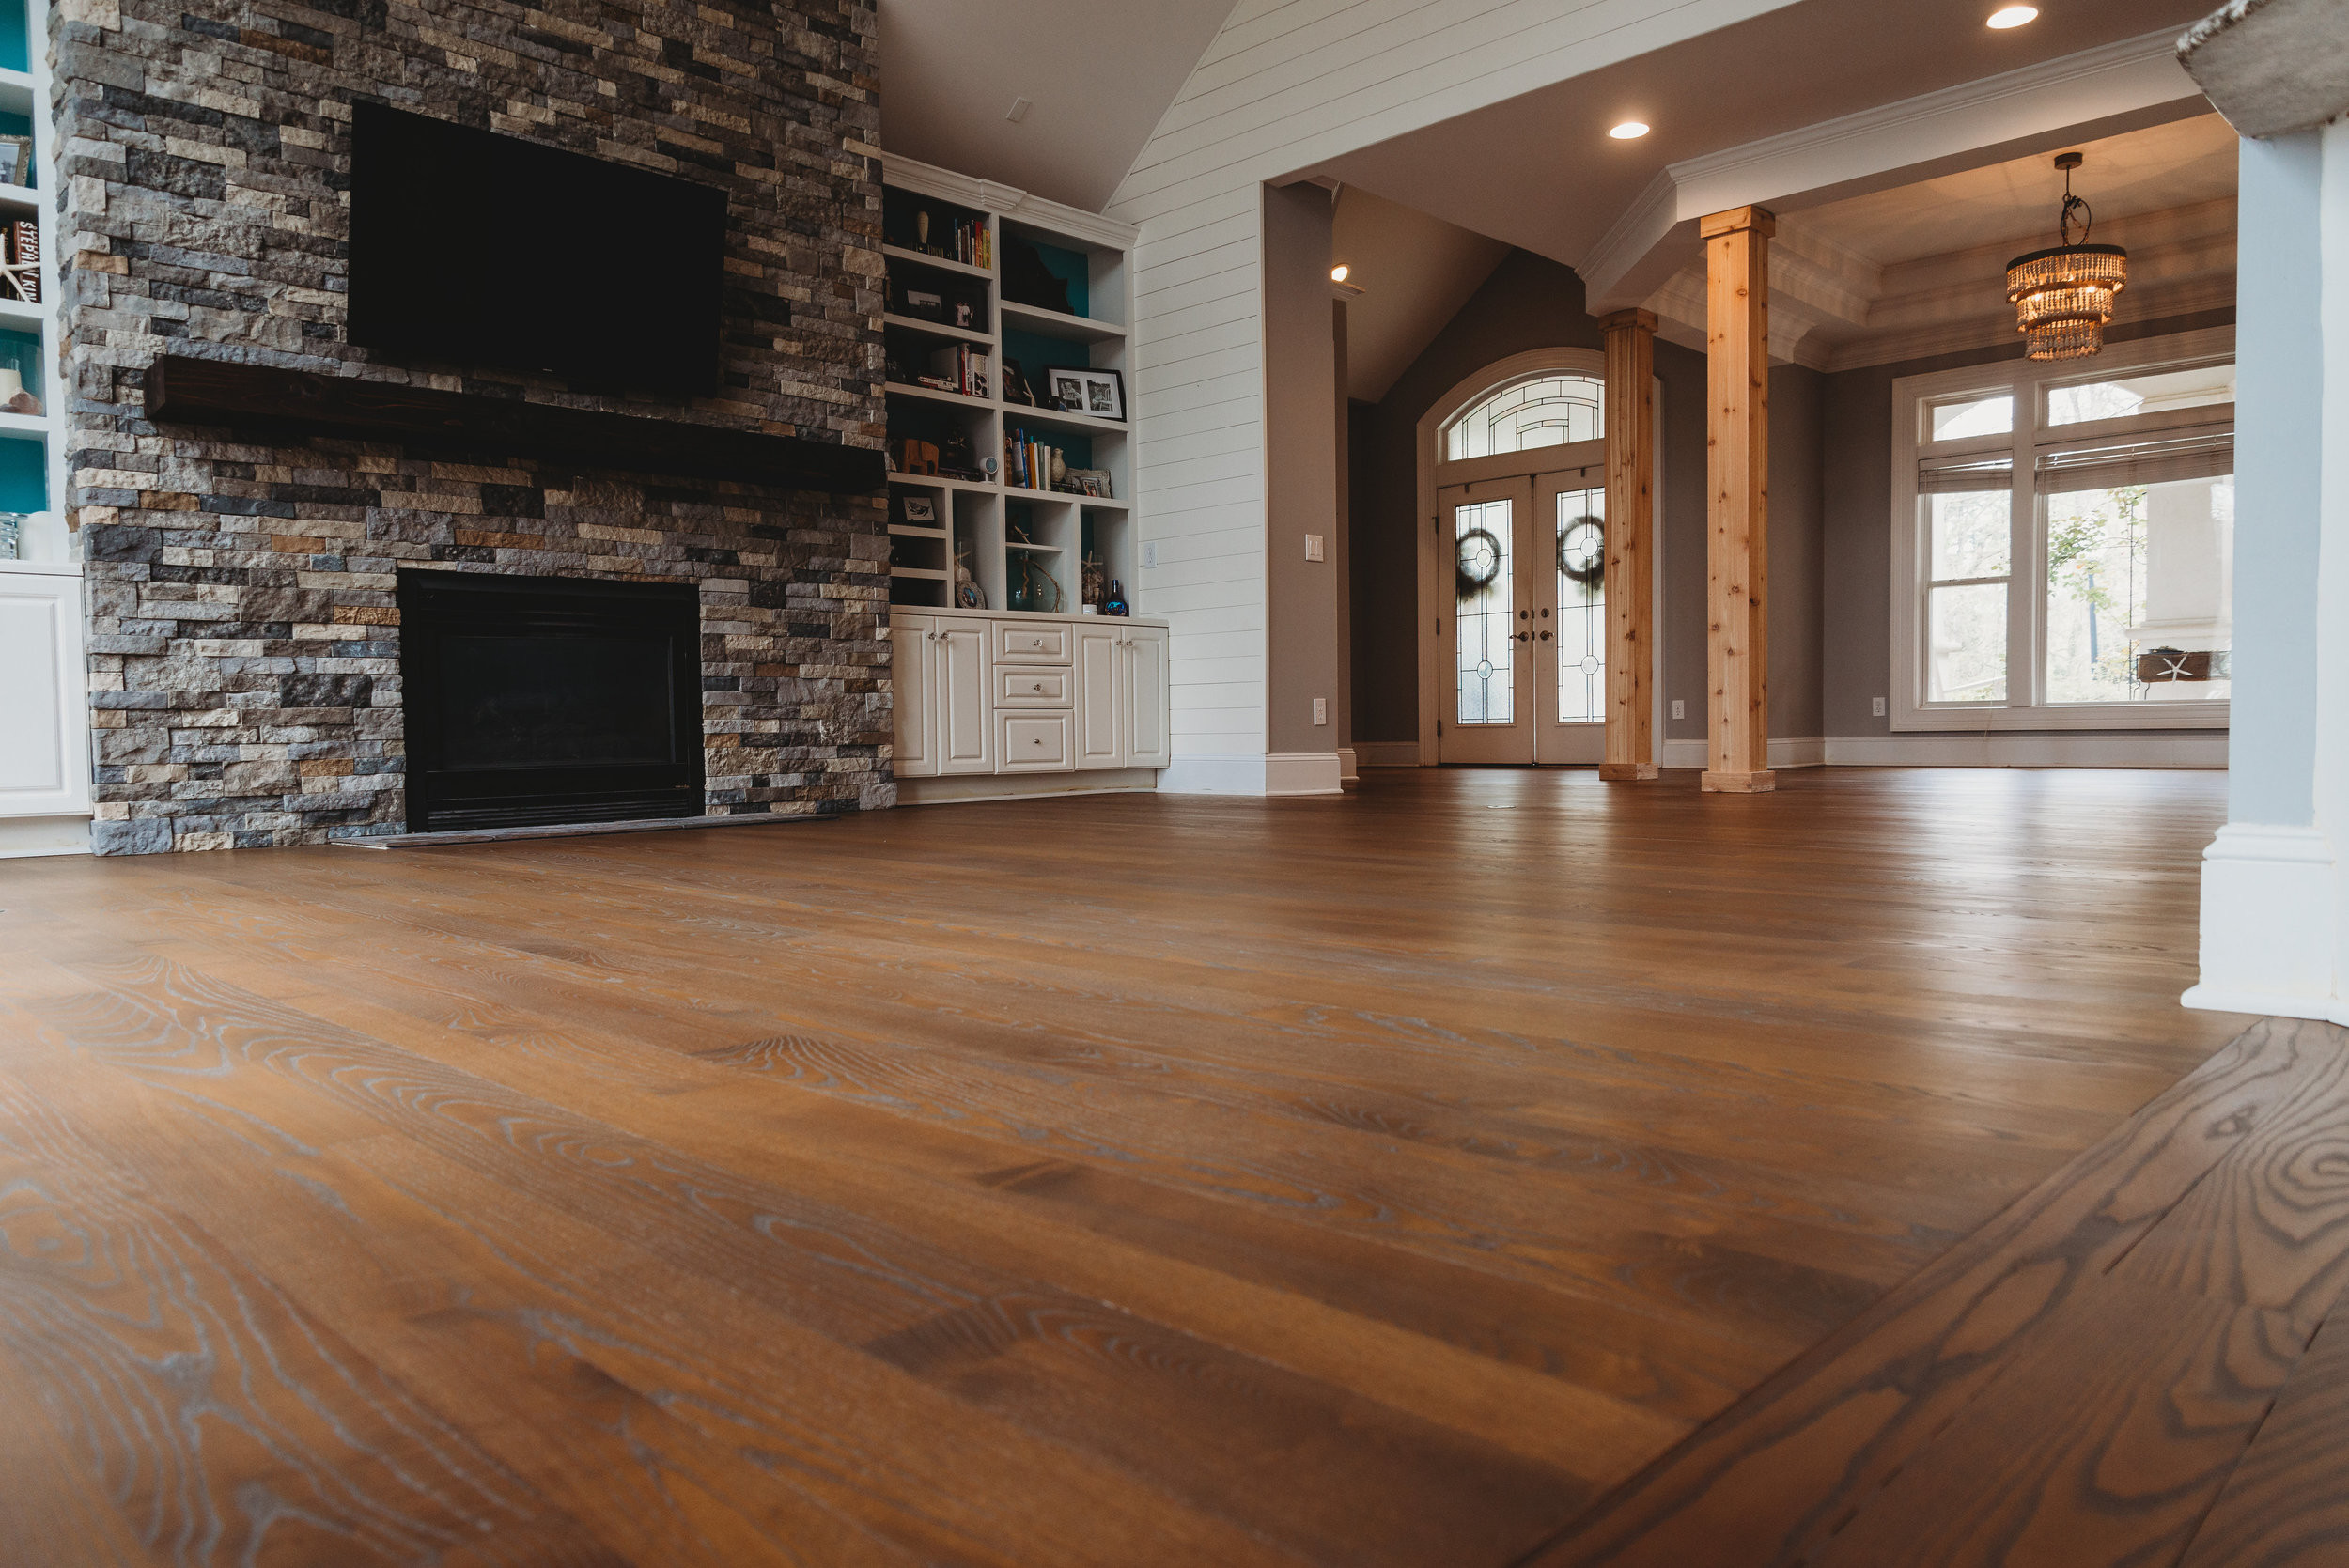 hardwood flooring mooresville nc of faith hardwood flooring hardwood floor refinishing installation in in proudly serving the lake norman area with 20 years experience your preferred nwfa hardwood flooring certified sand and finisher